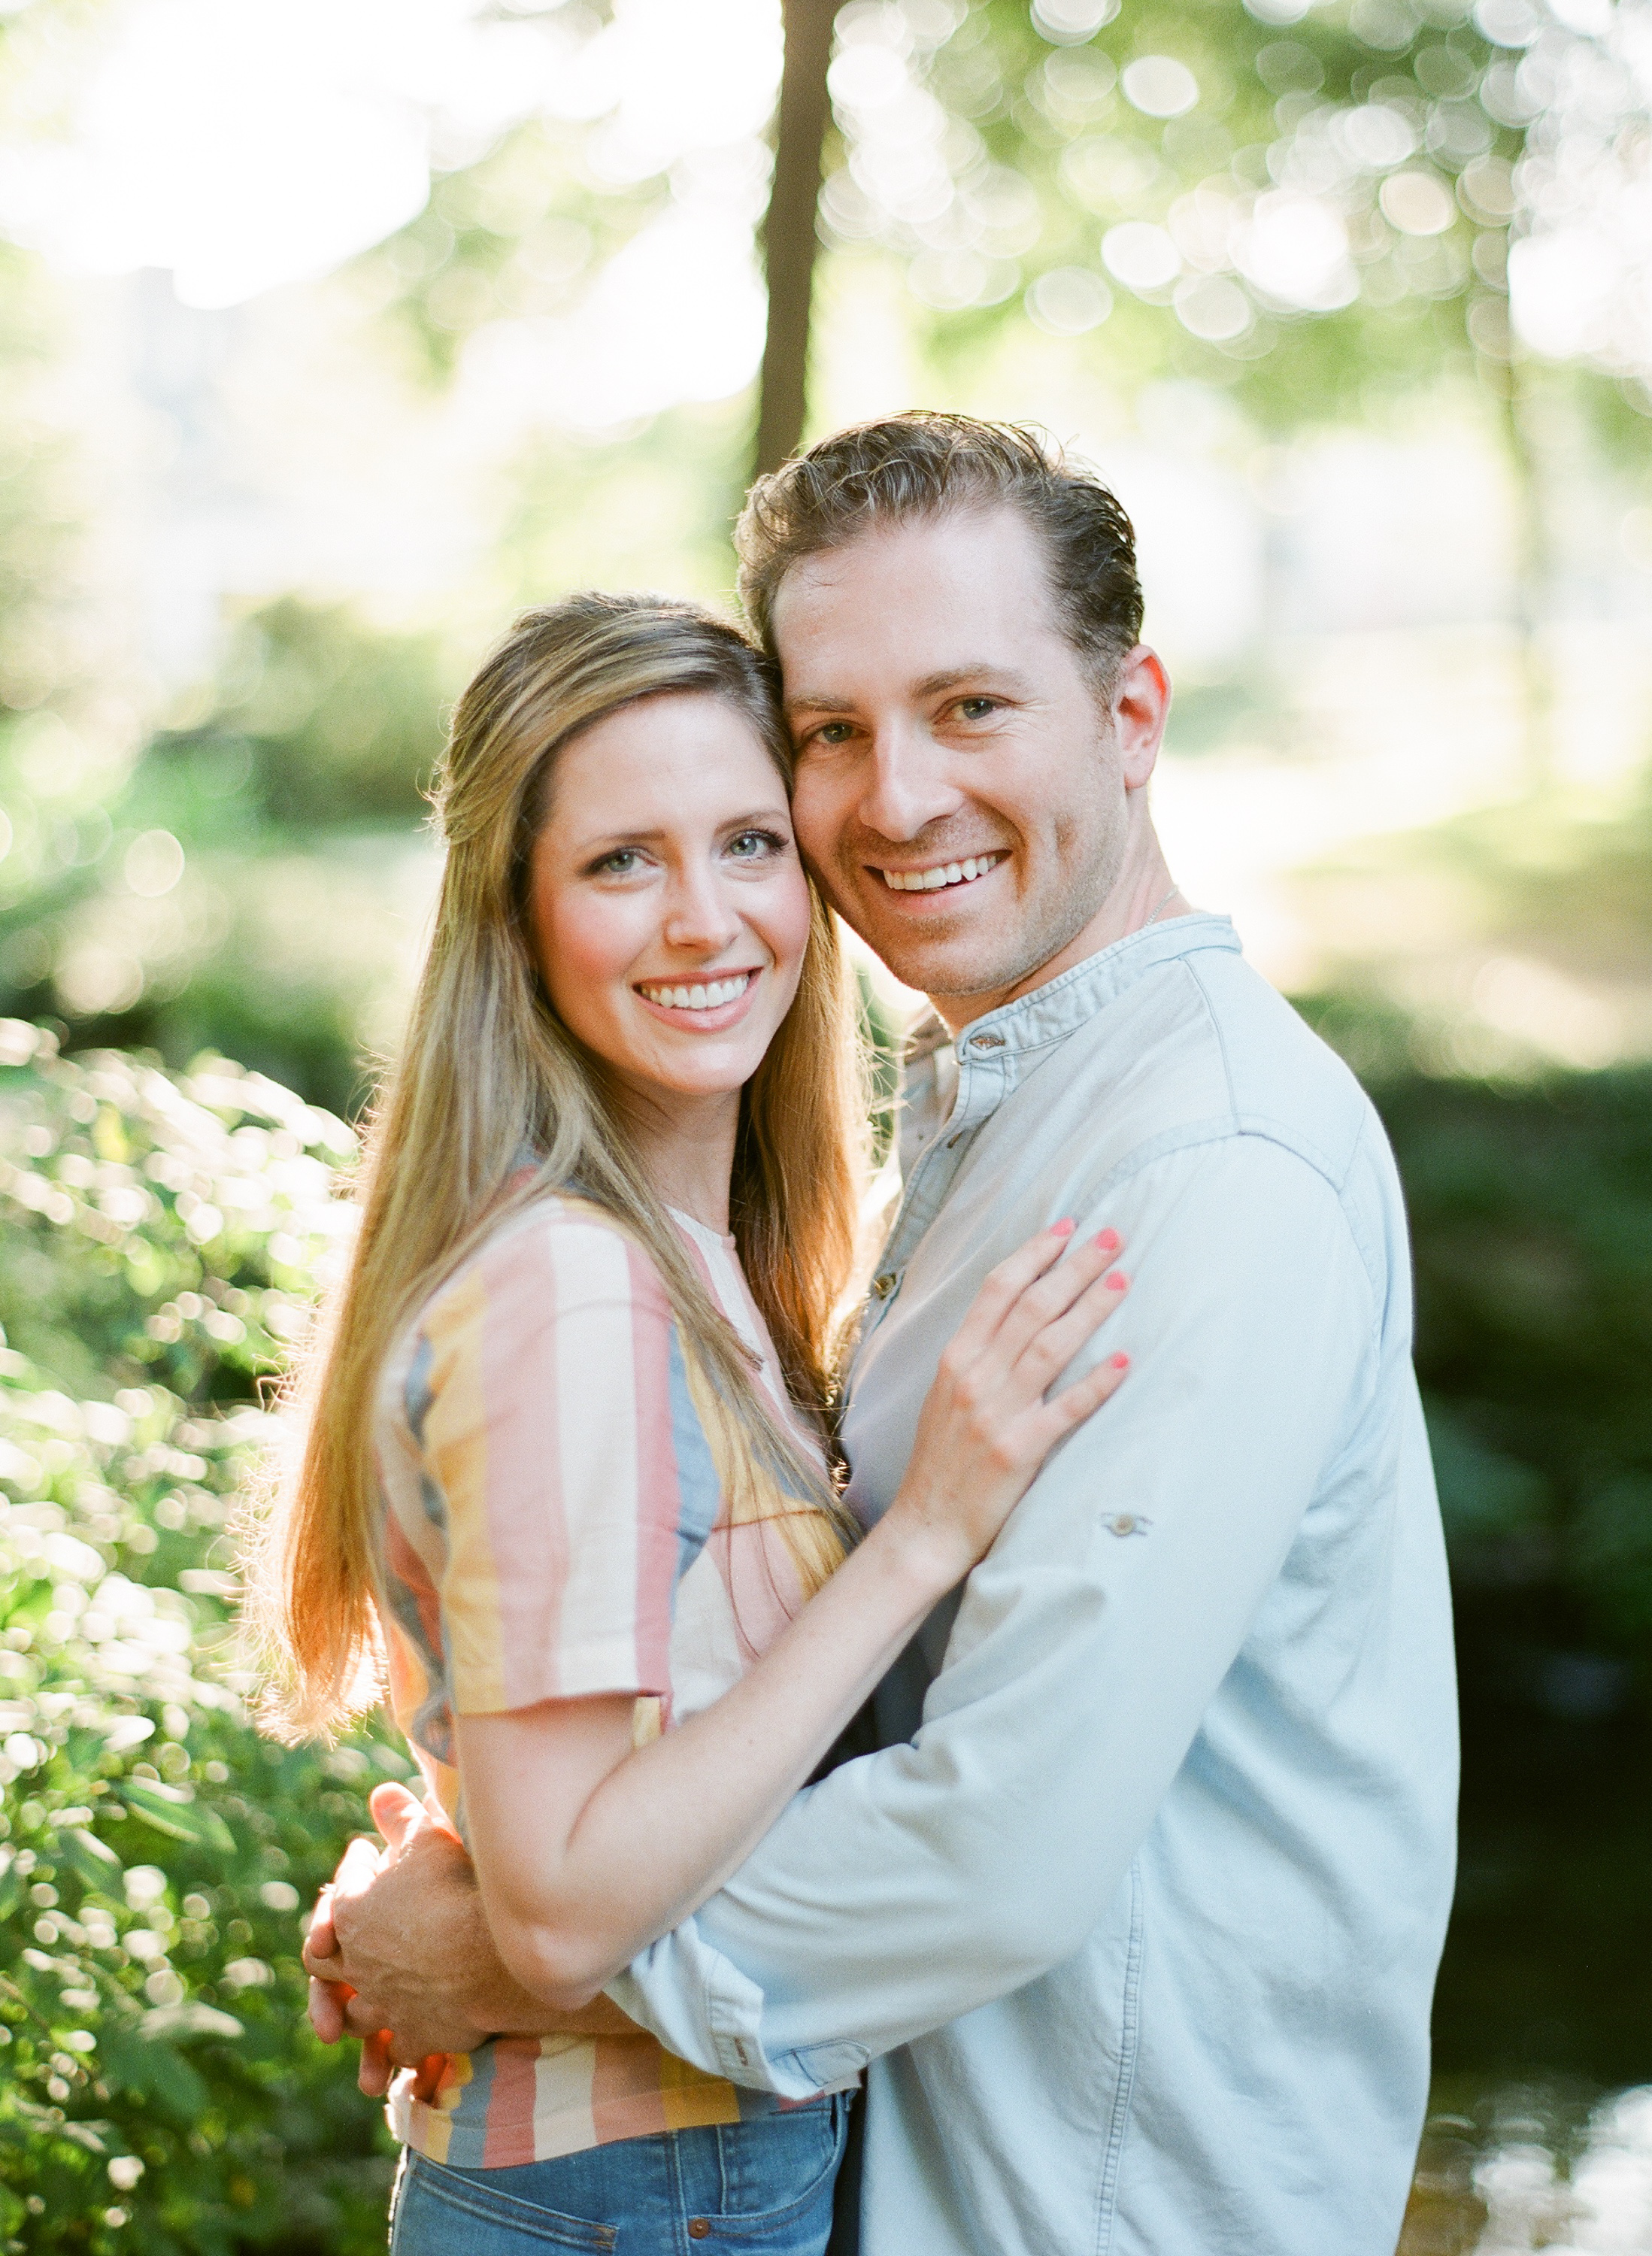 CO_engaged_SB (27 of 44).jpg